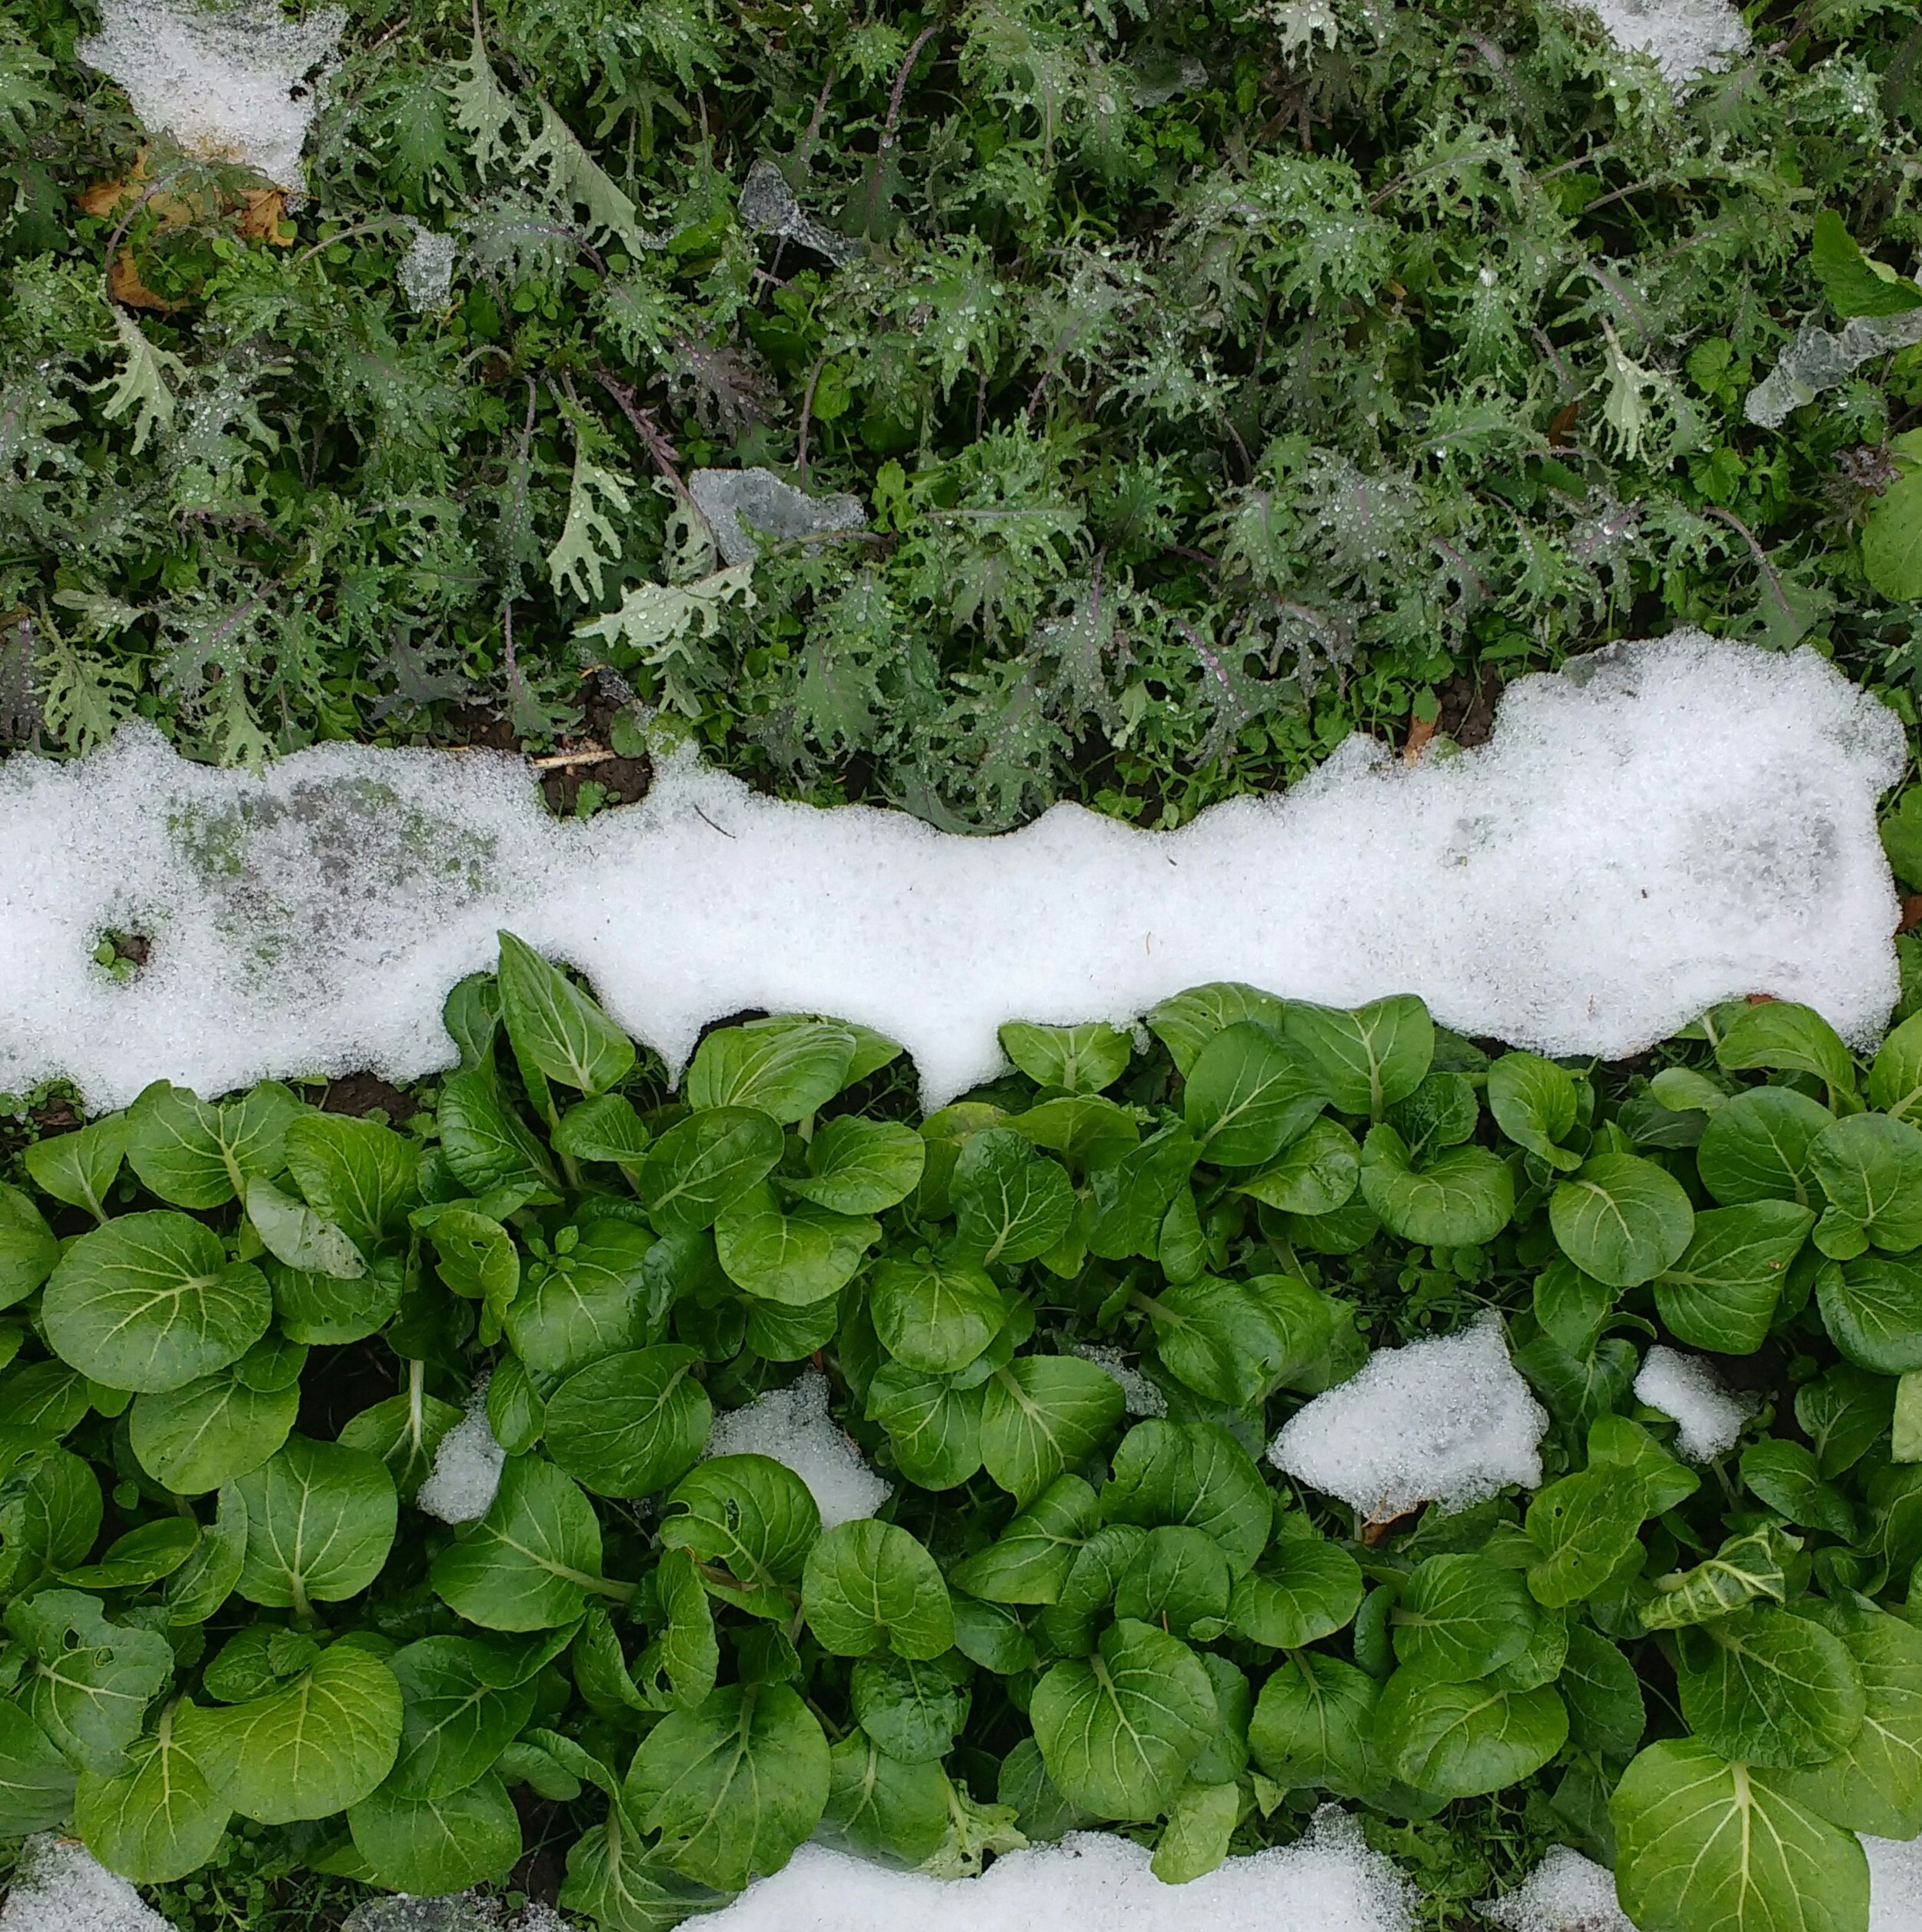 Fall to Winter: Season Extension in your Garden - Learn how to keep harvesting from your garden until the end of the year (and beyond!). We'll show you simple, effective methods of extending your gardening season, so that you can enjoy fresh-picked, tasty produce into the winter months.Date: September 2019Time: to be announced in the Summer